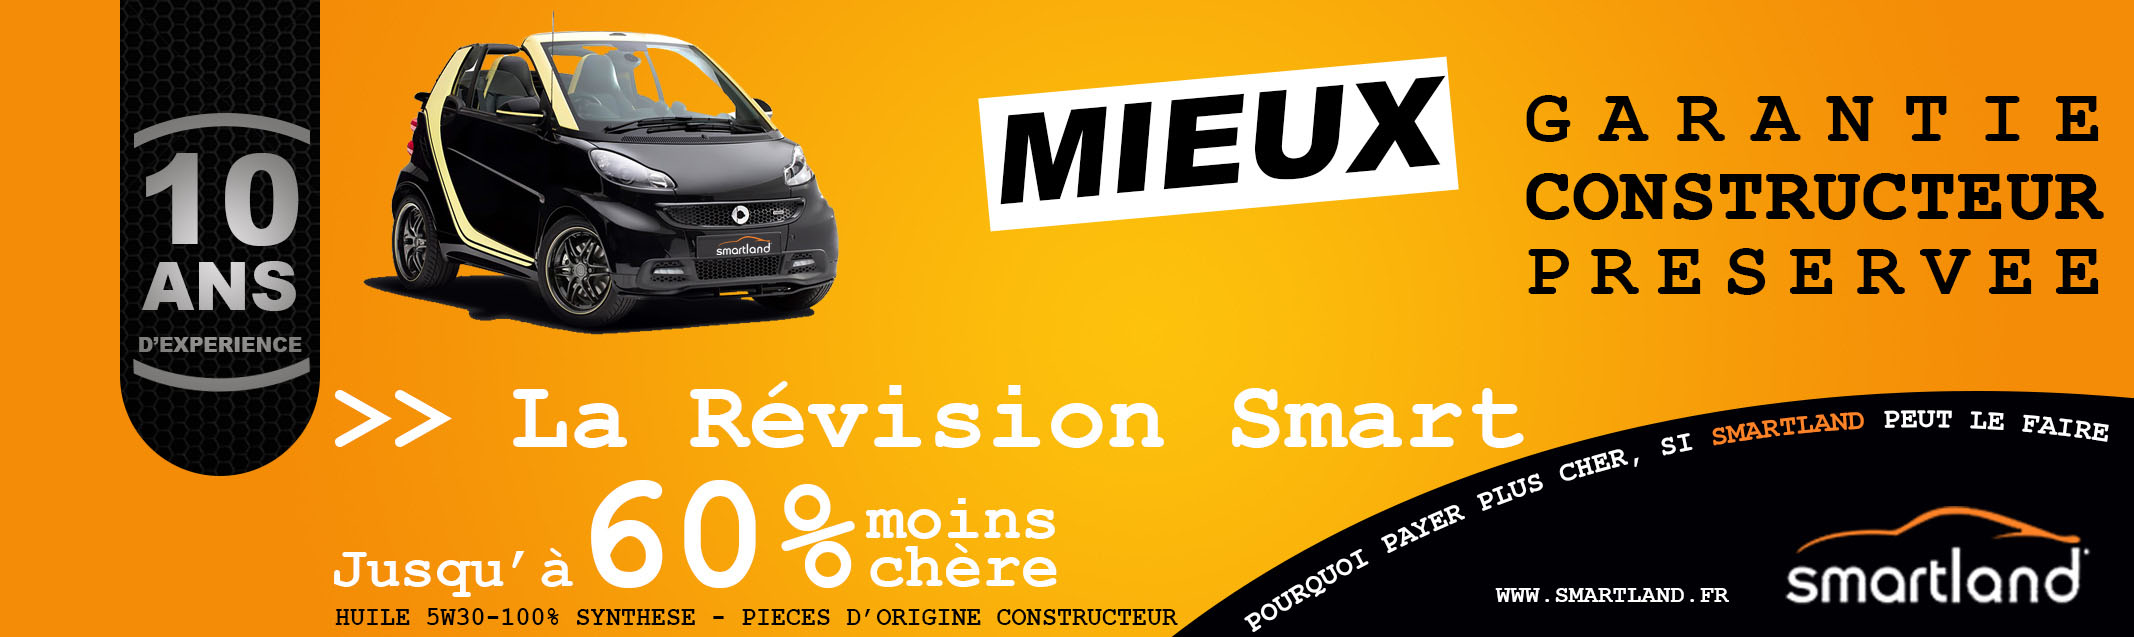 garage smart 92 paris vidange entretien r vision smart c fortwo brabus. Black Bedroom Furniture Sets. Home Design Ideas